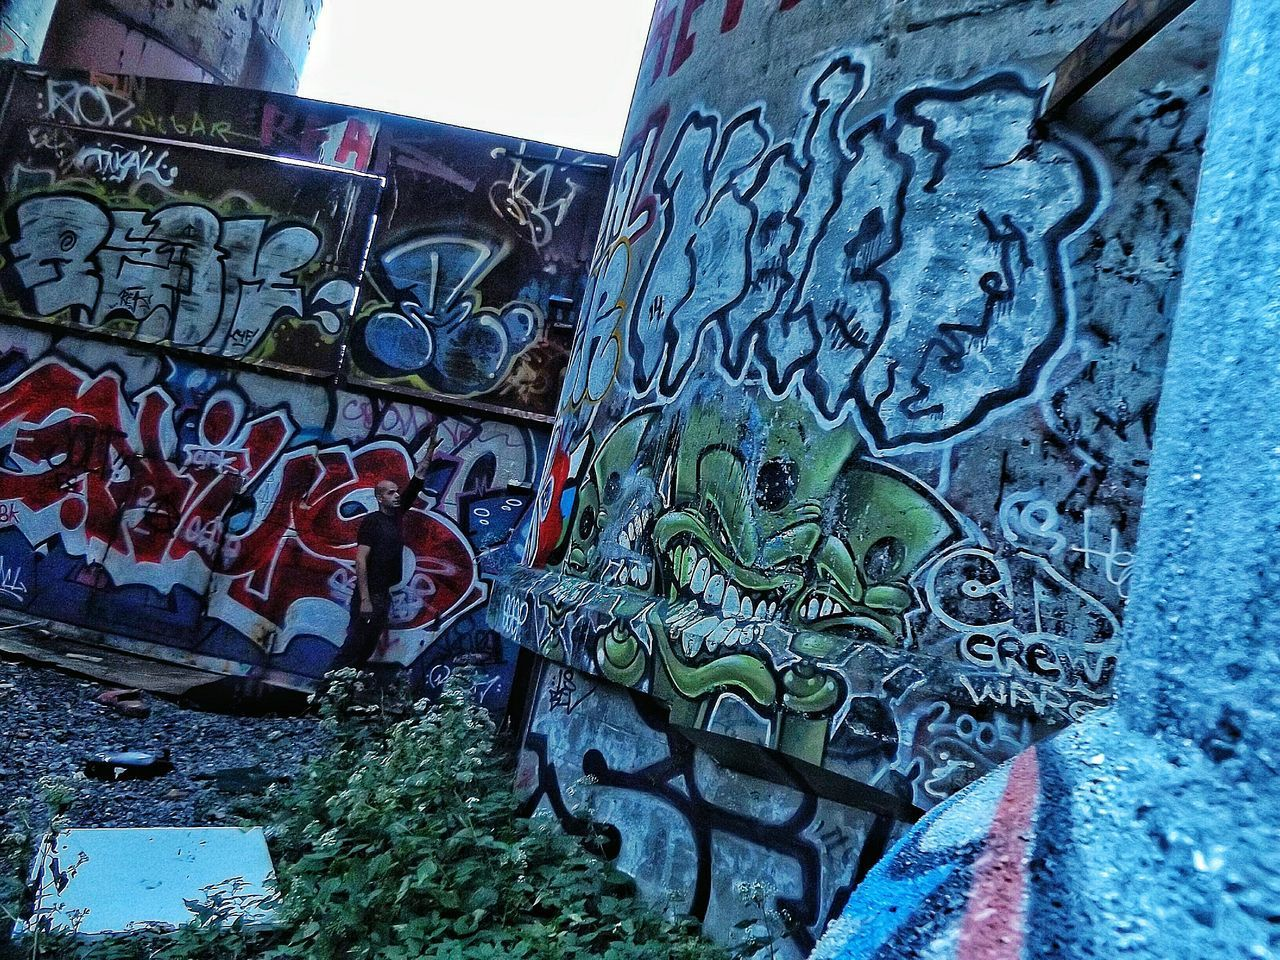 graffiti, art and craft, built structure, outdoors, text, day, architecture, metal, building exterior, street art, no people, low angle view, close-up, sky